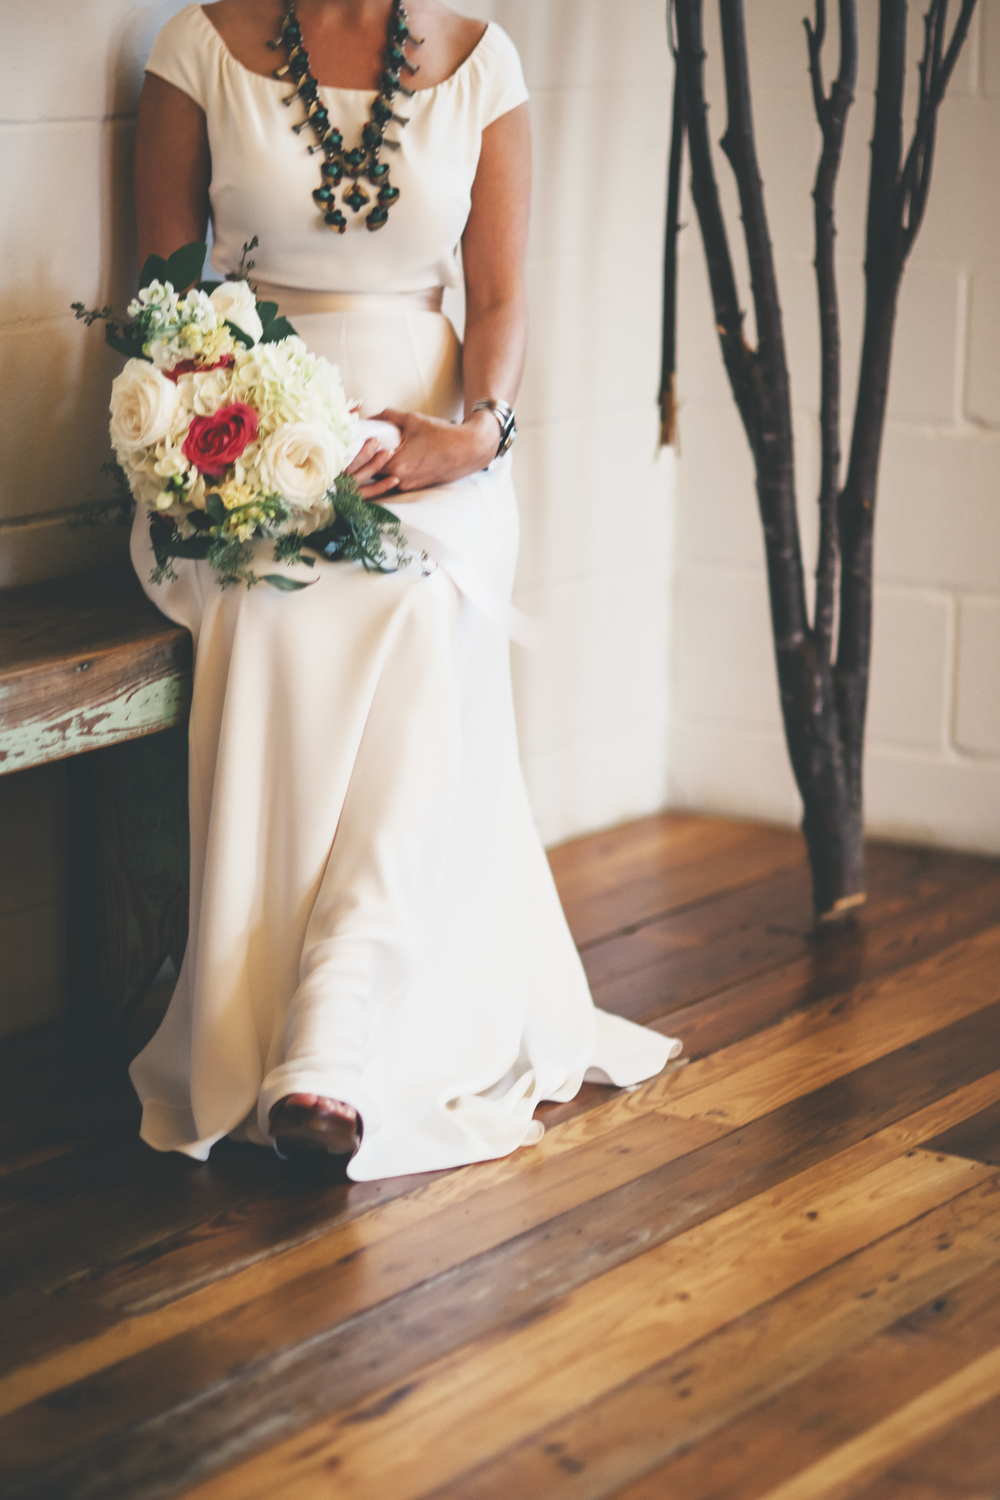 albrica_tierra_atlanta_wedding_photographer_13.jpg